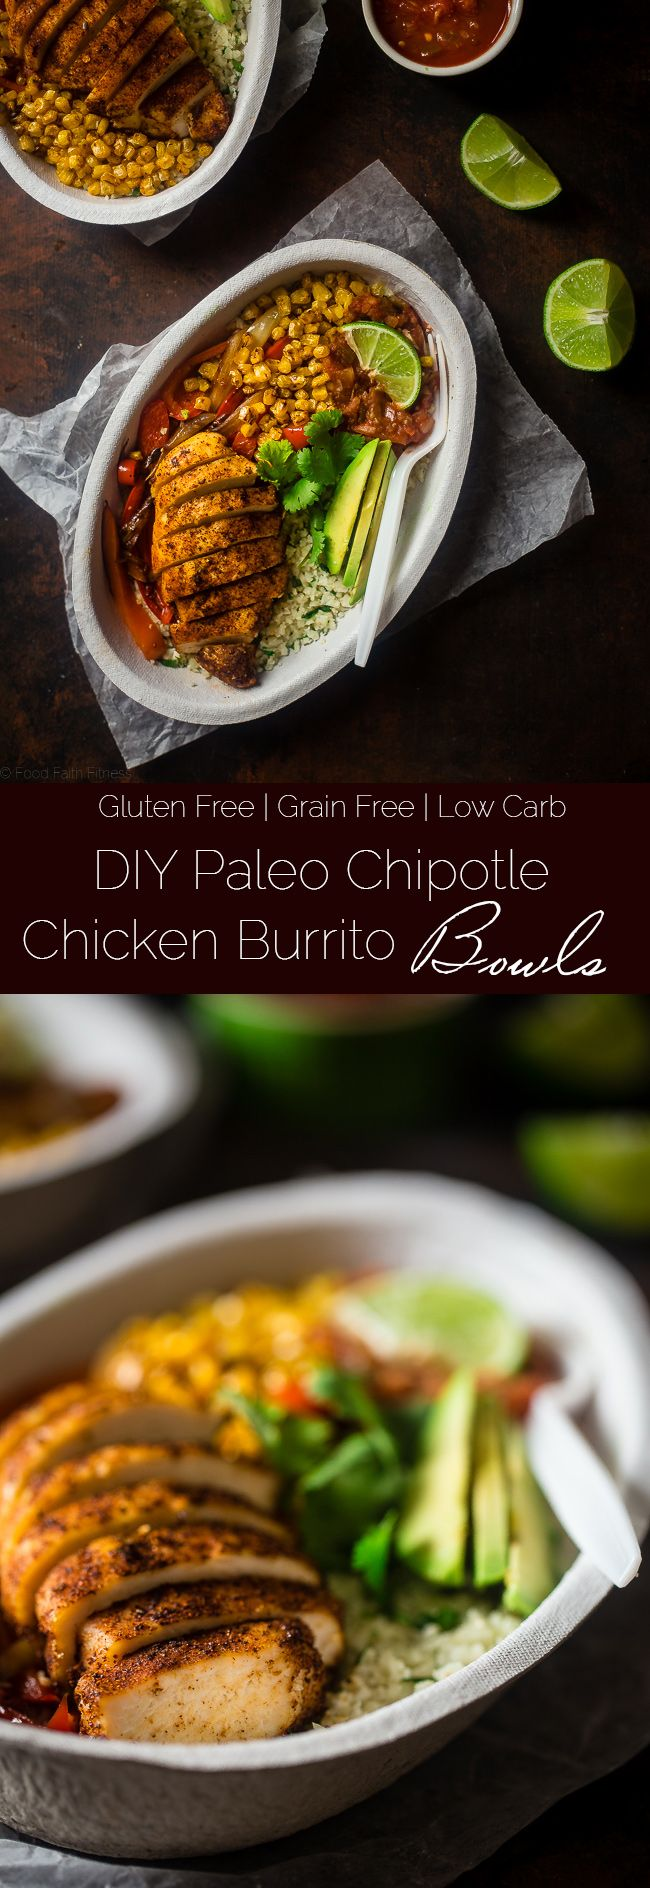 Paleo Chipotle Chicken Burrito Bowls - Make your own healthy, gluten free and paleo-friendly Chipotle Burrito Bowl at home with this quick and easy, 30 minute recipe! It's perfect for busy weeknights and under 450 calories! | Foodfaithfitness.com | @FoodFaithFit